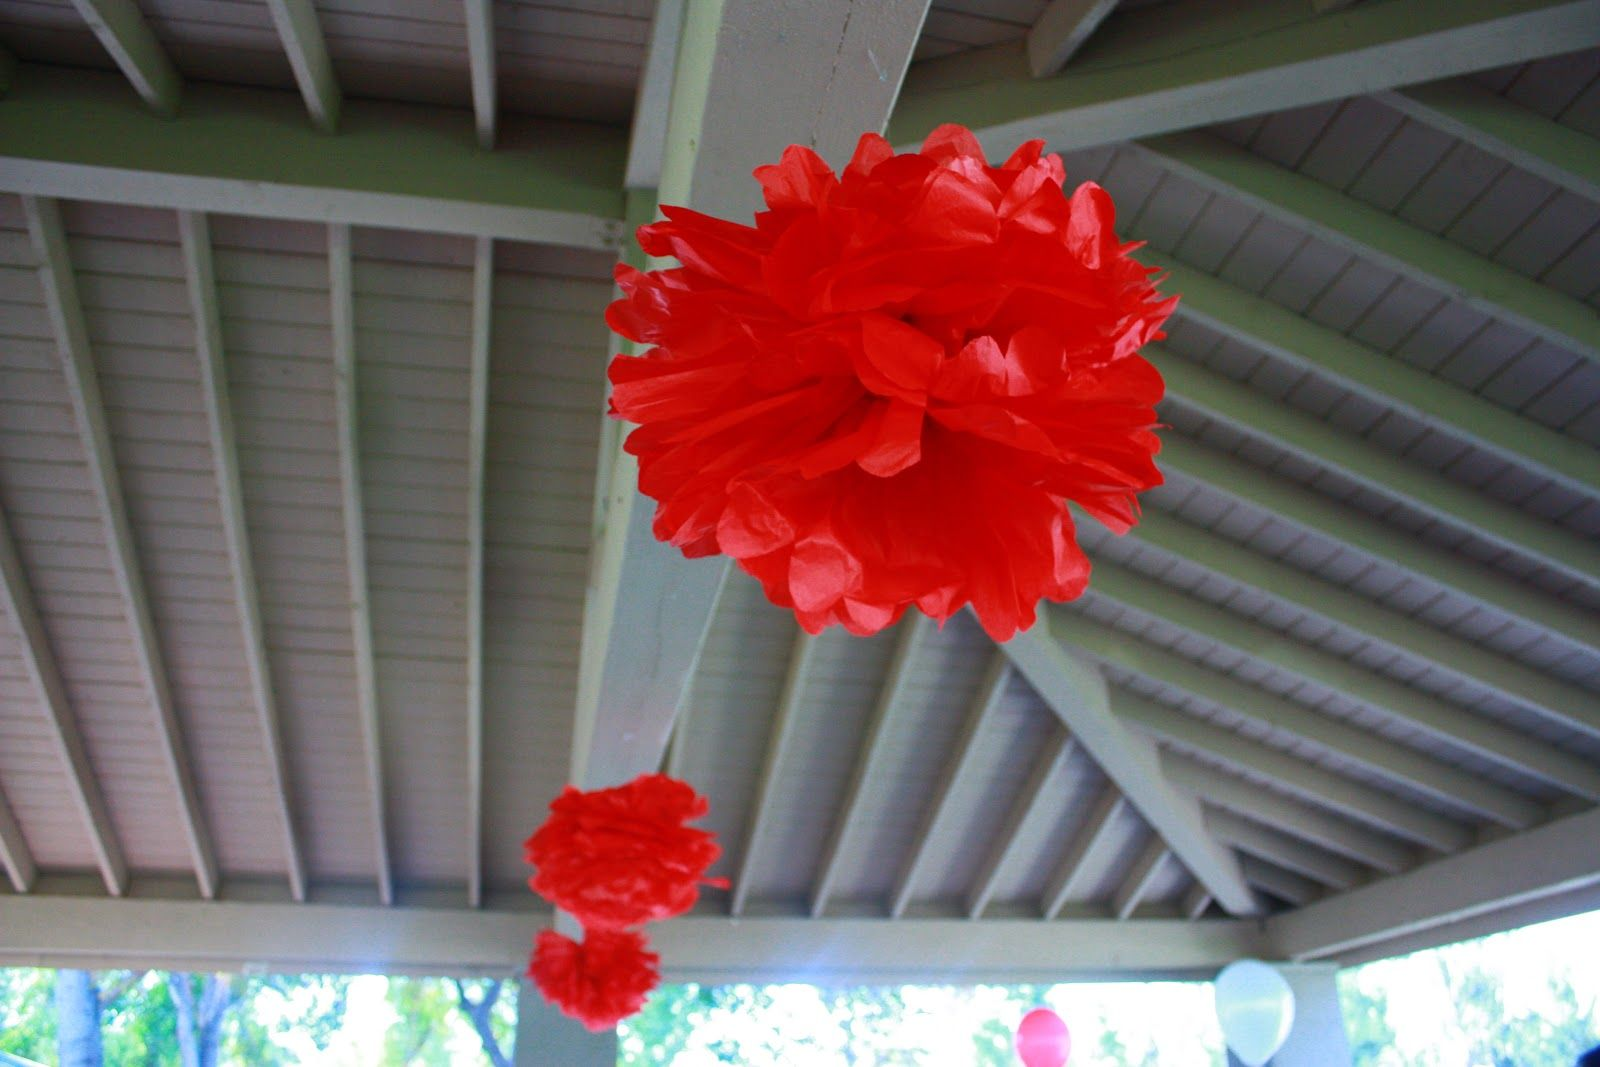 Lilly's 1st Birthday - teddy bear picnic themed!    Red tissue pom poms from the ceiling!    http://macdonaldsplayland.blogspot.com/2012/11/lillys-1st-birthday-party-teddy-bear.html